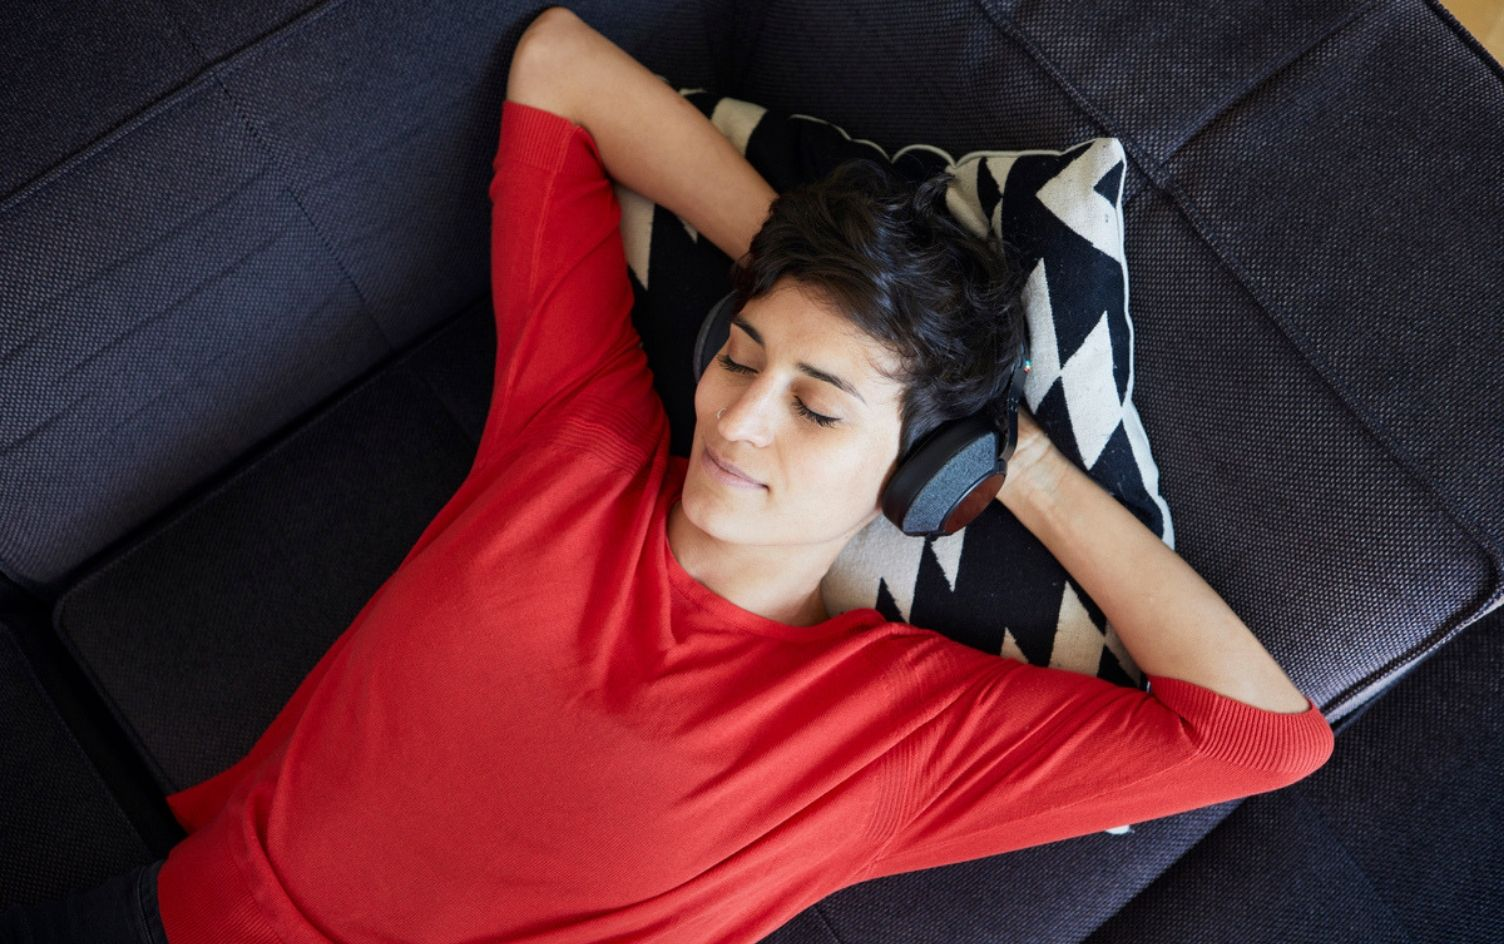 How To Use Progressive Muscle Relaxation To Reduce Stress